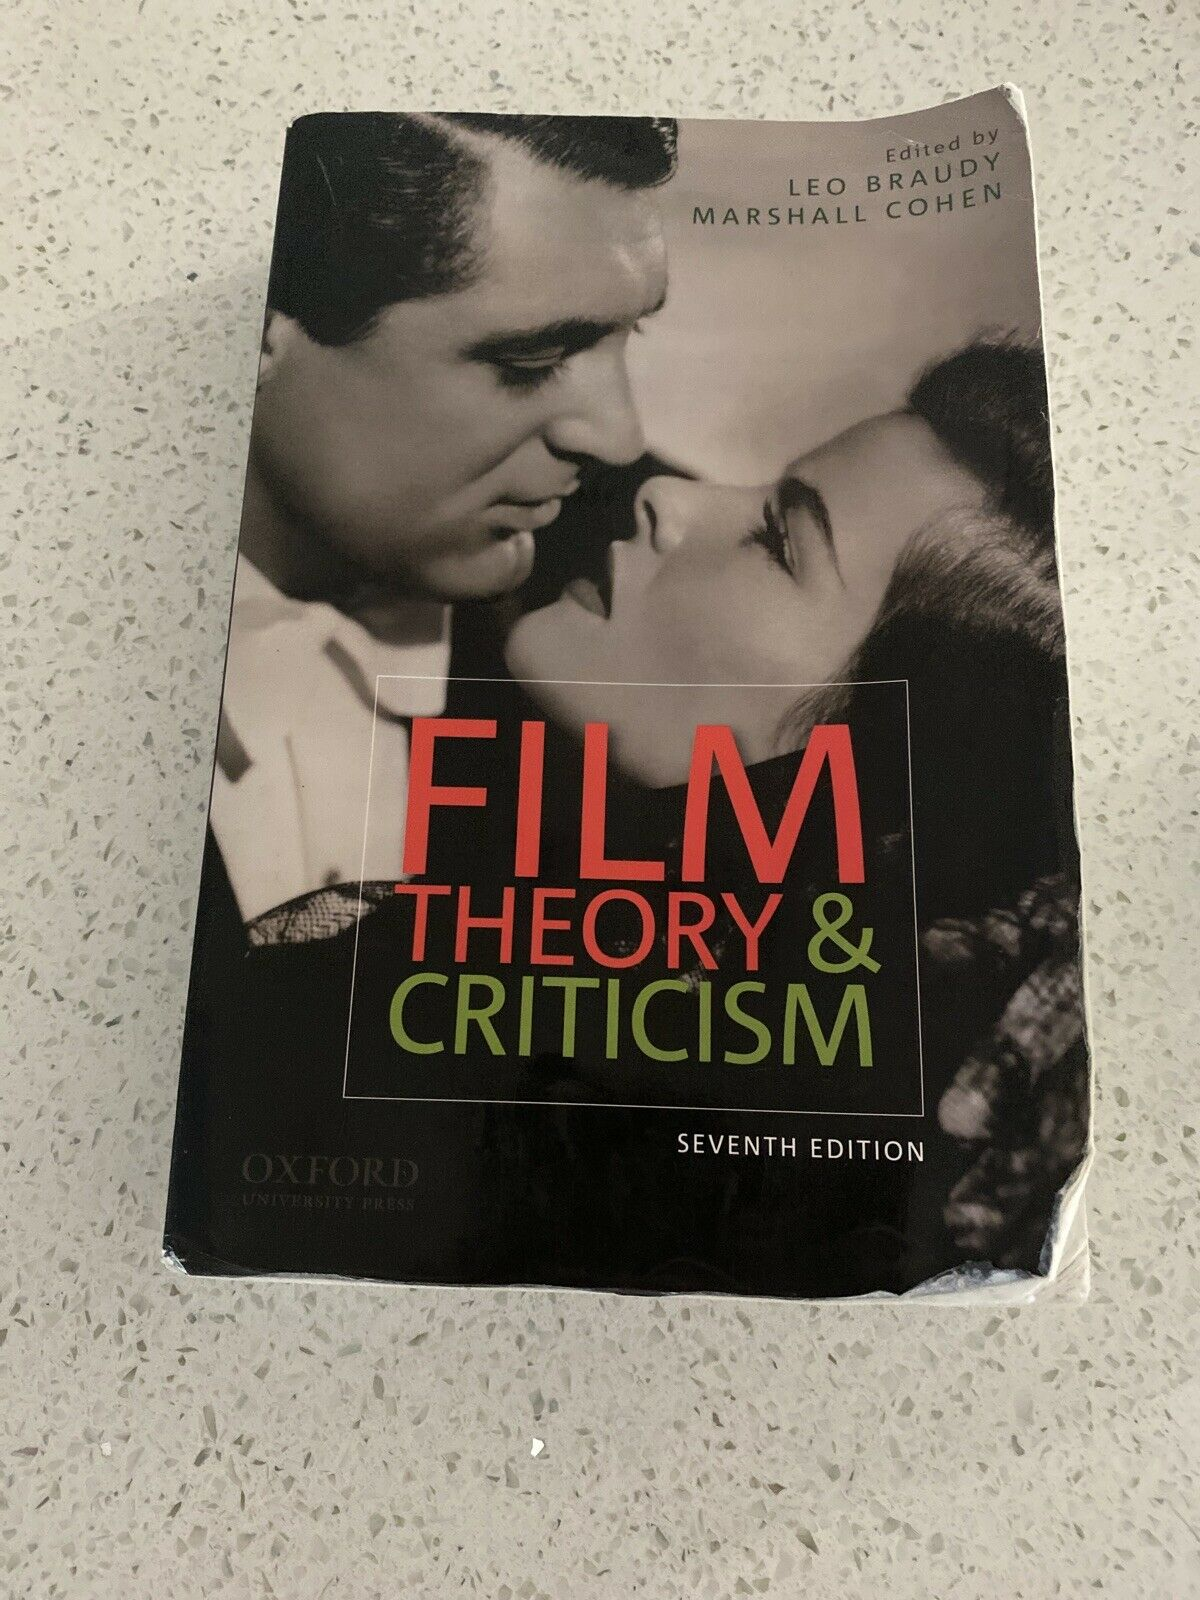 Film Theory And Criticism 2009 Trade Paperback For Sale Online Ebay